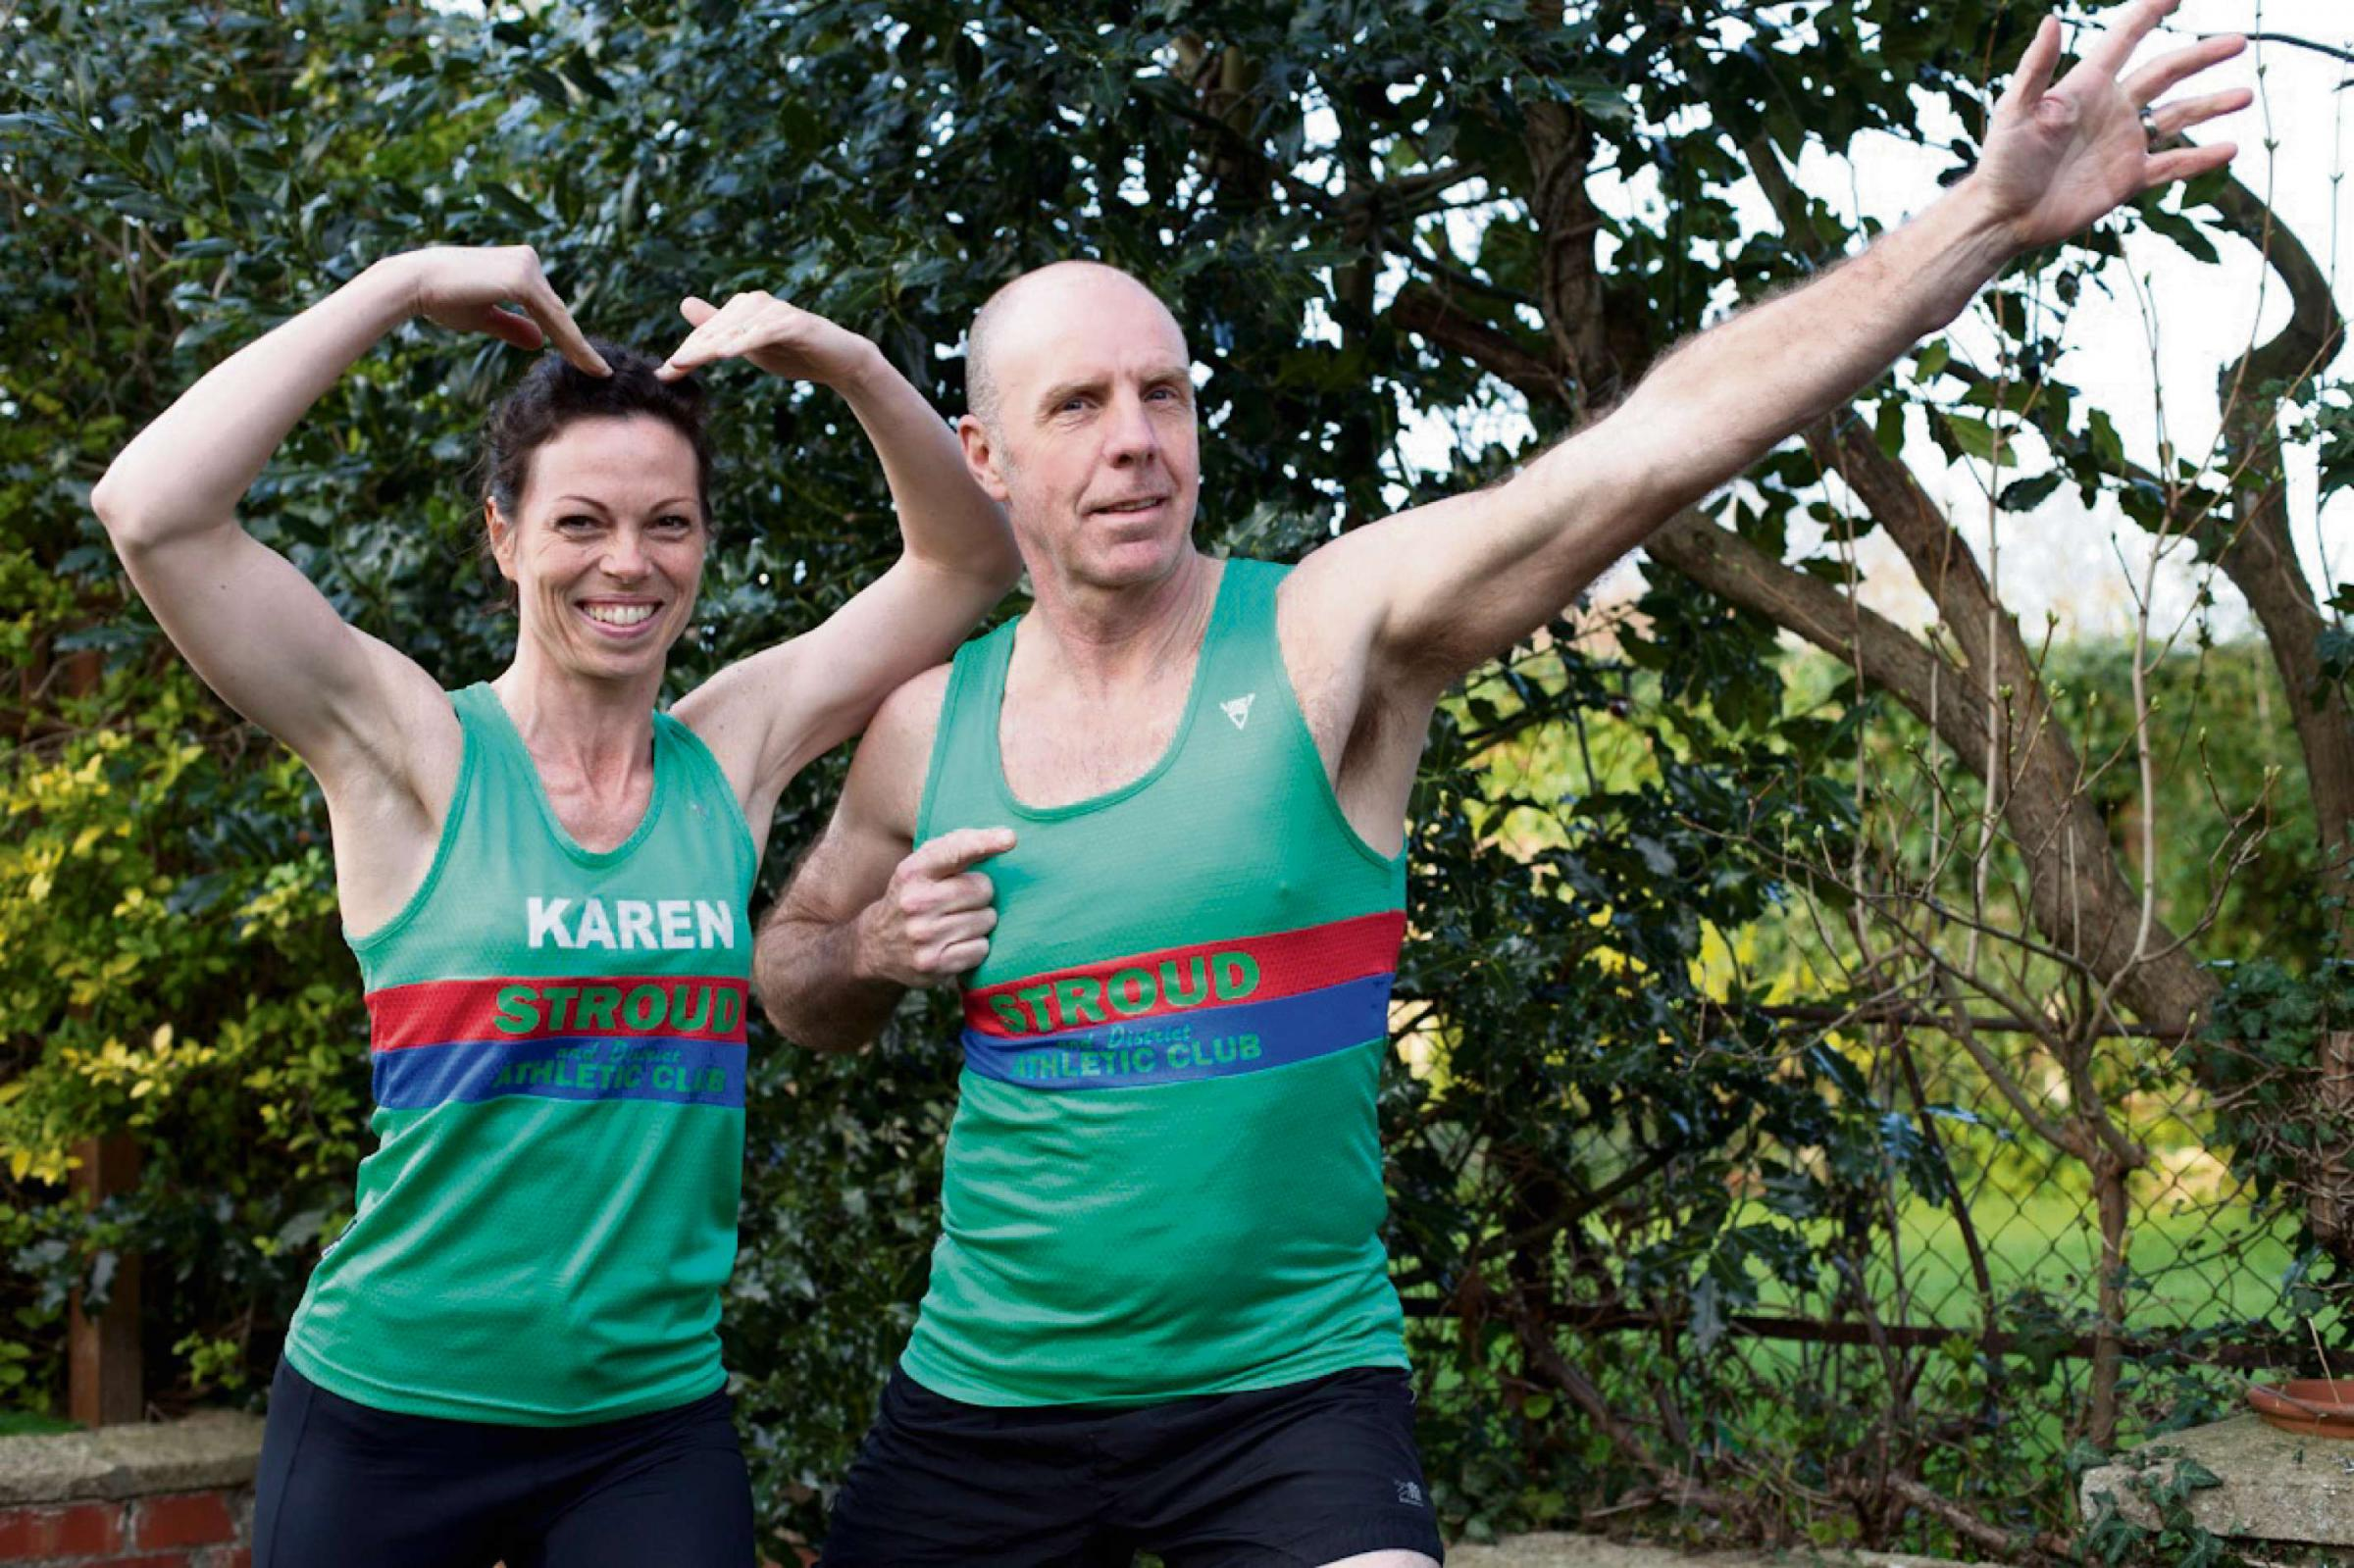 Karen and Colin Waller are ready for the London Marathon